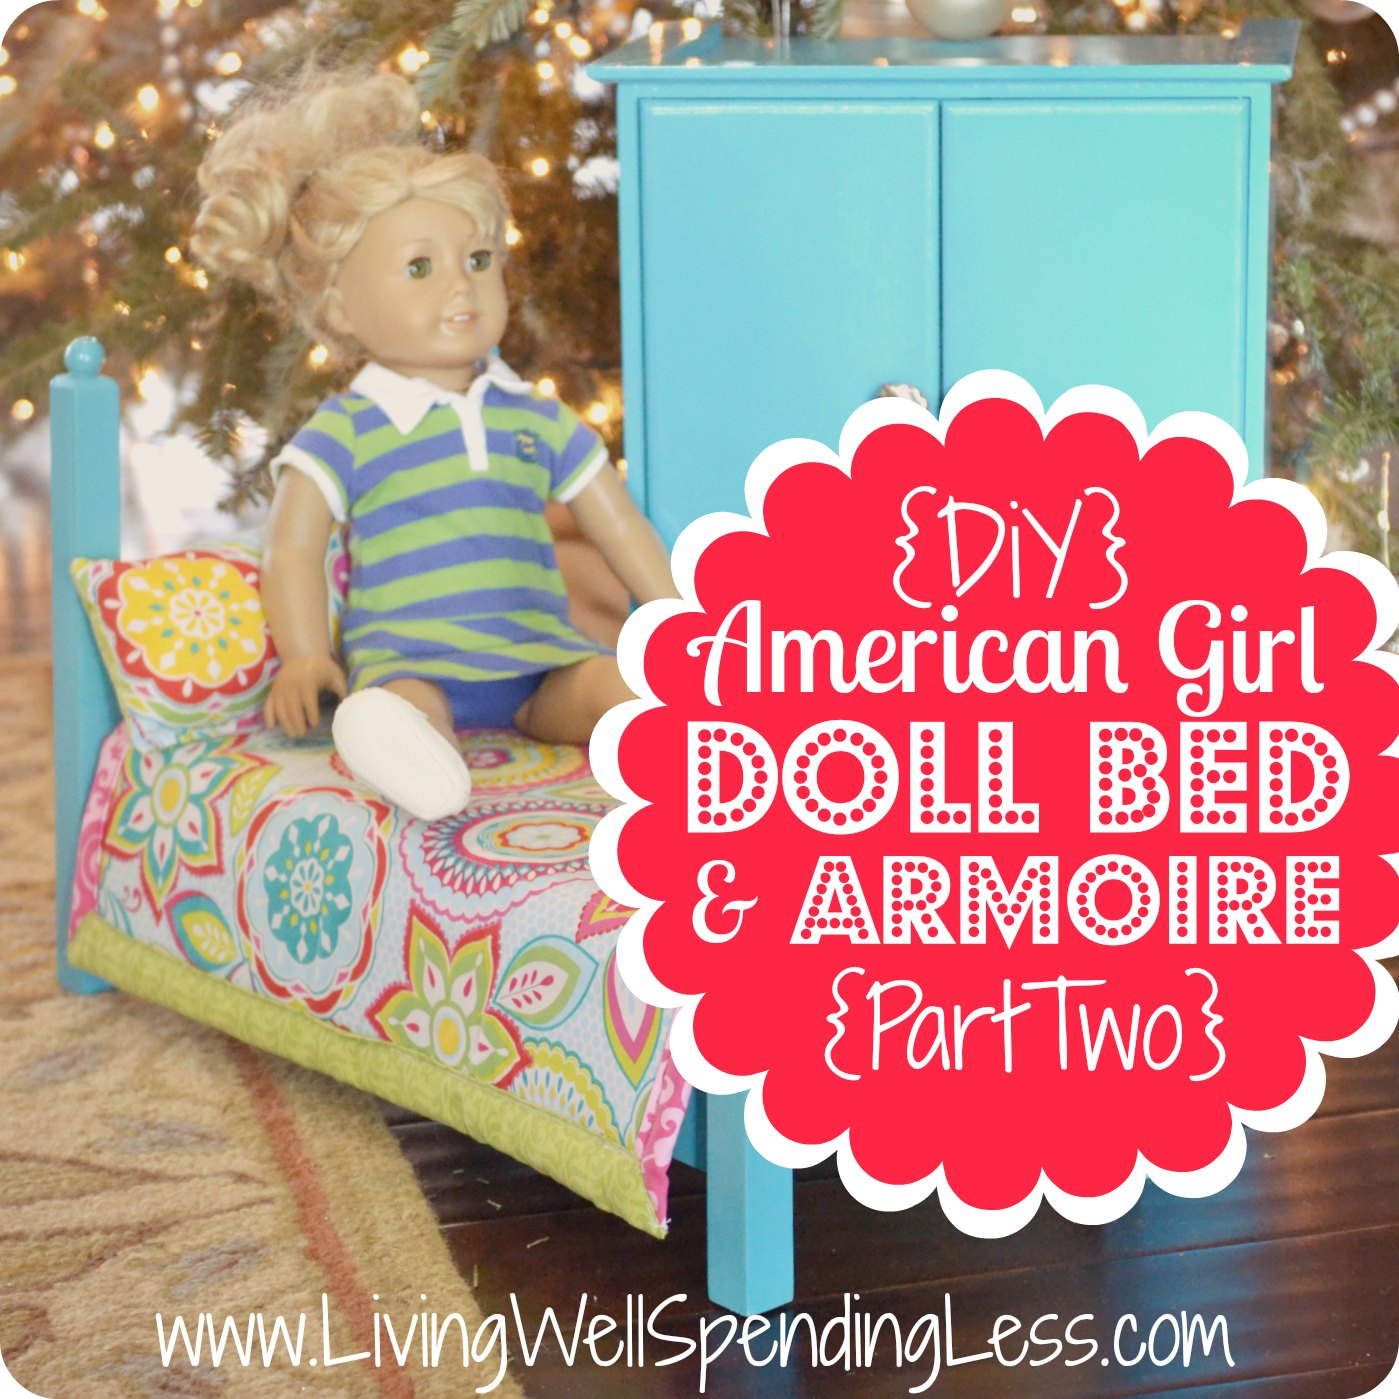 American girl doll furniture clipart.